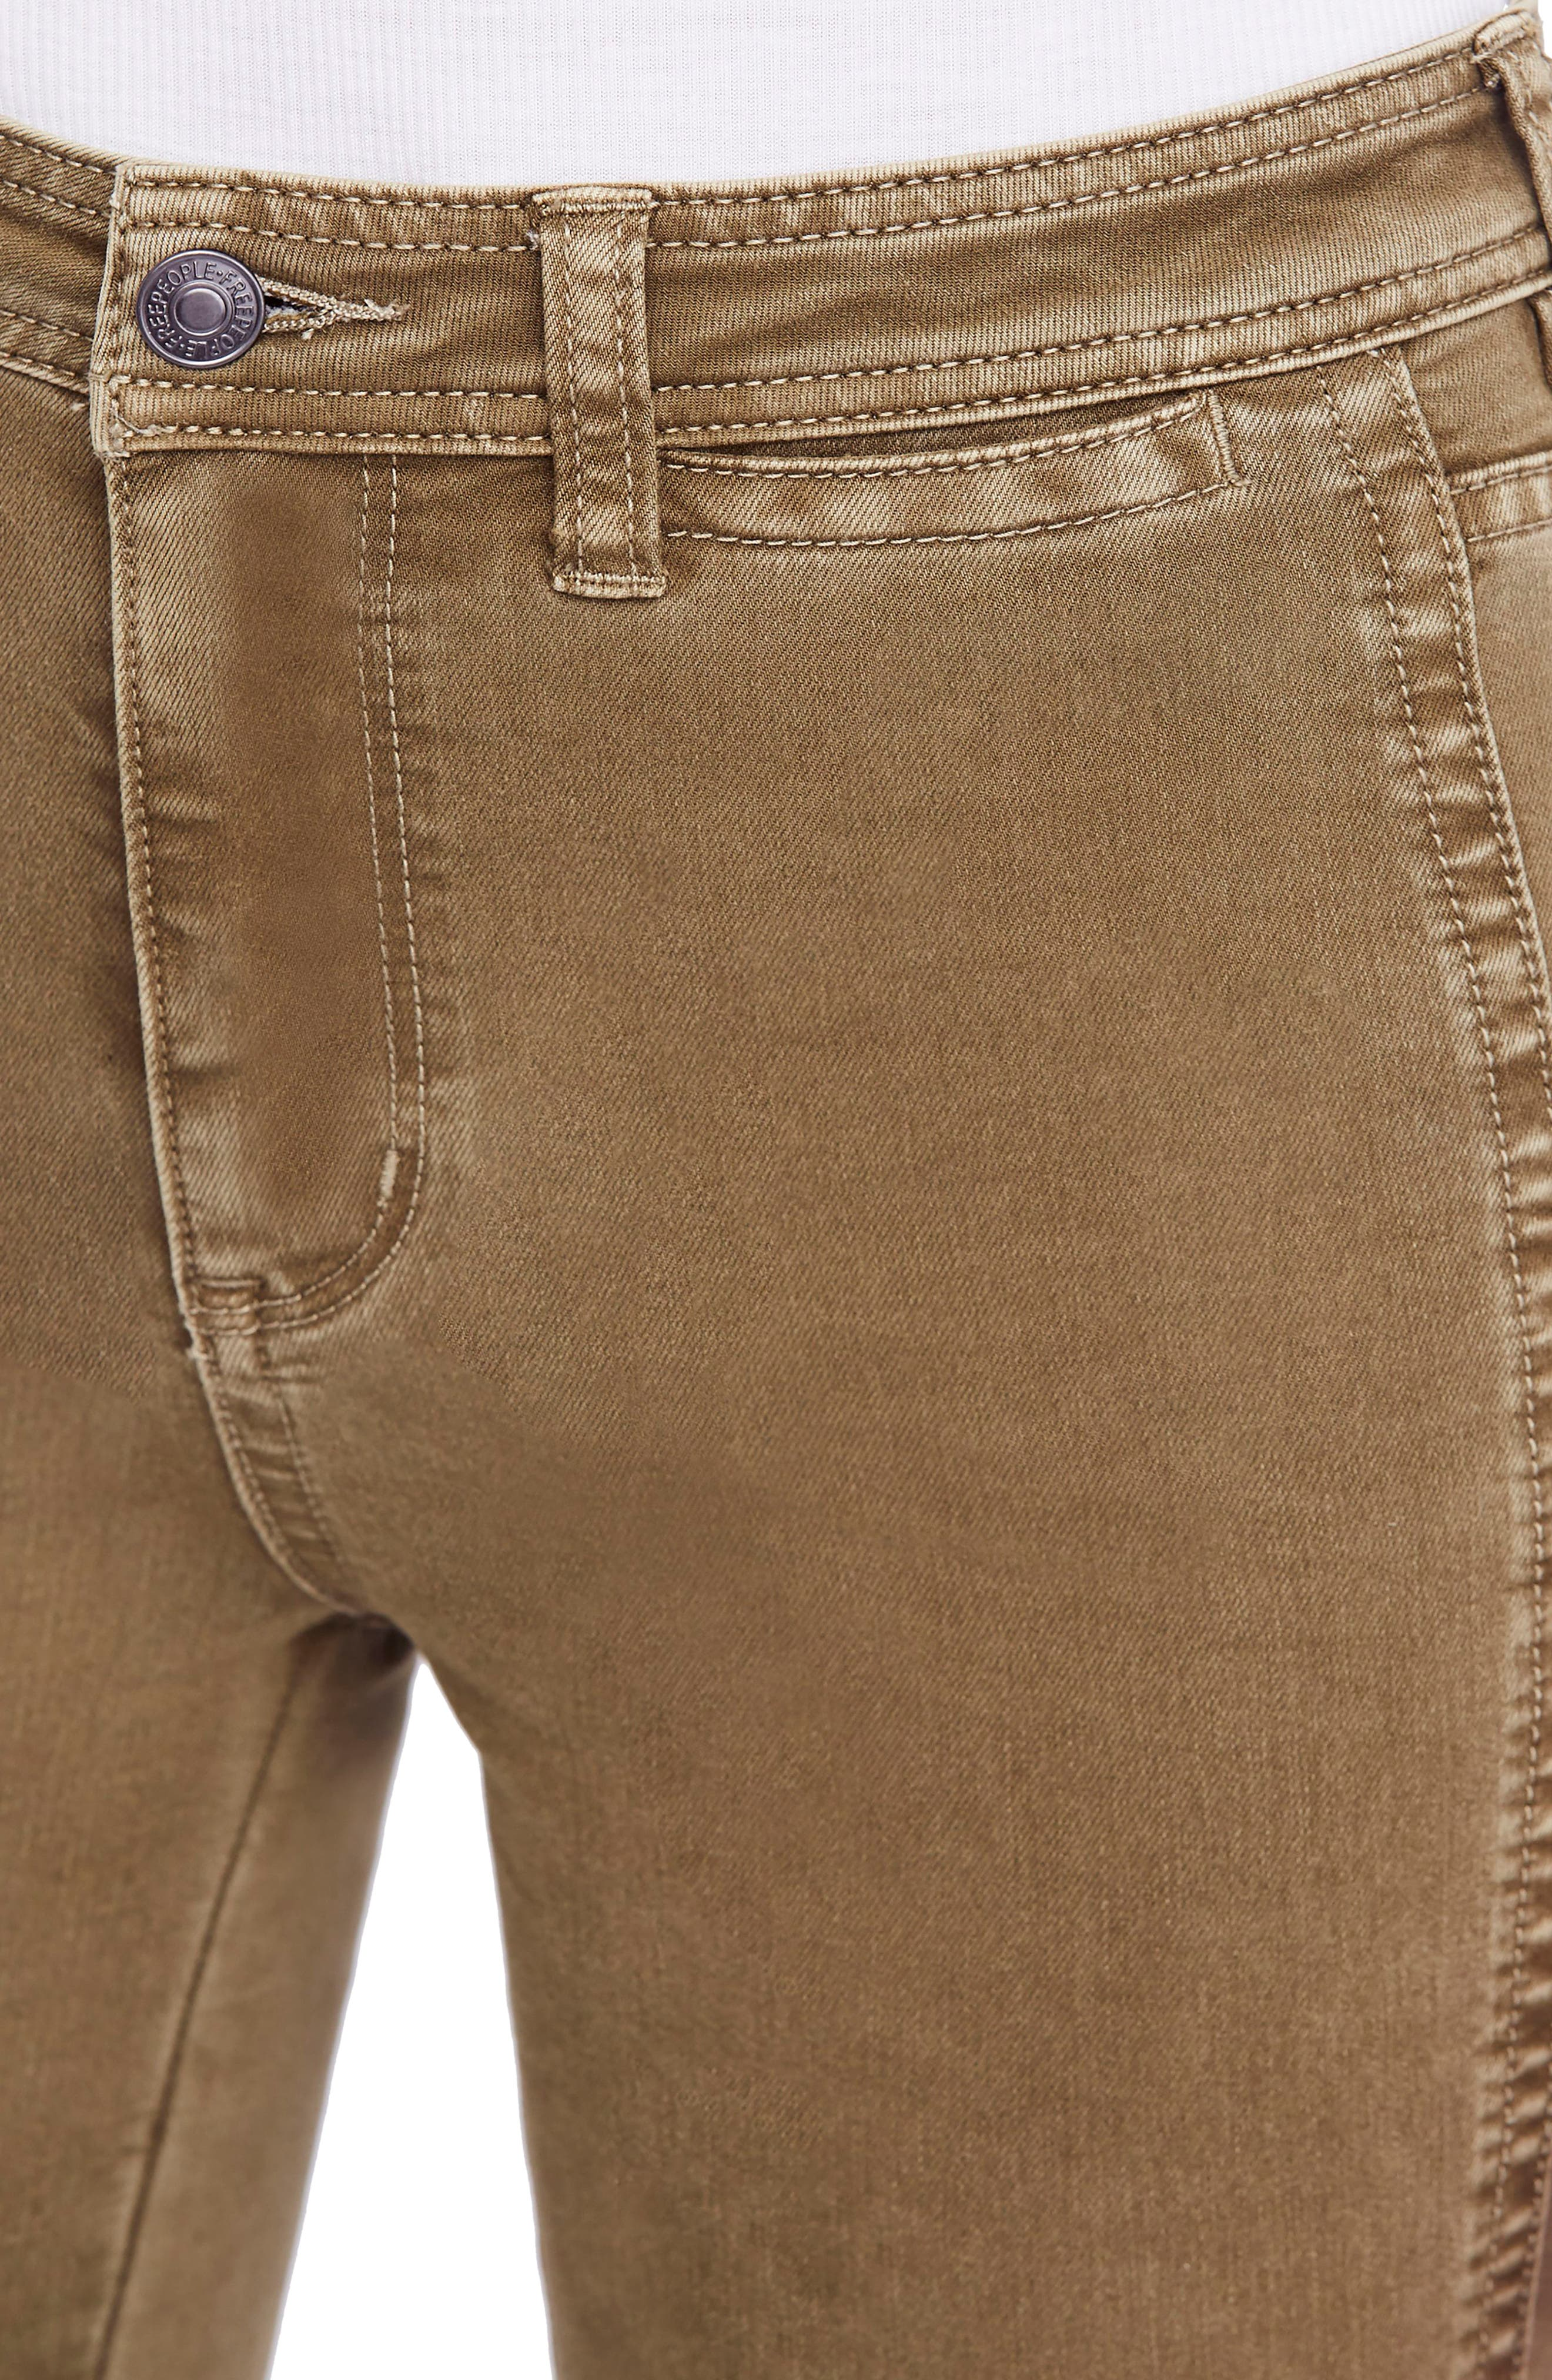 FREE PEOPLE,                             Brooke Flare Jeans,                             Alternate thumbnail 4, color,                             200